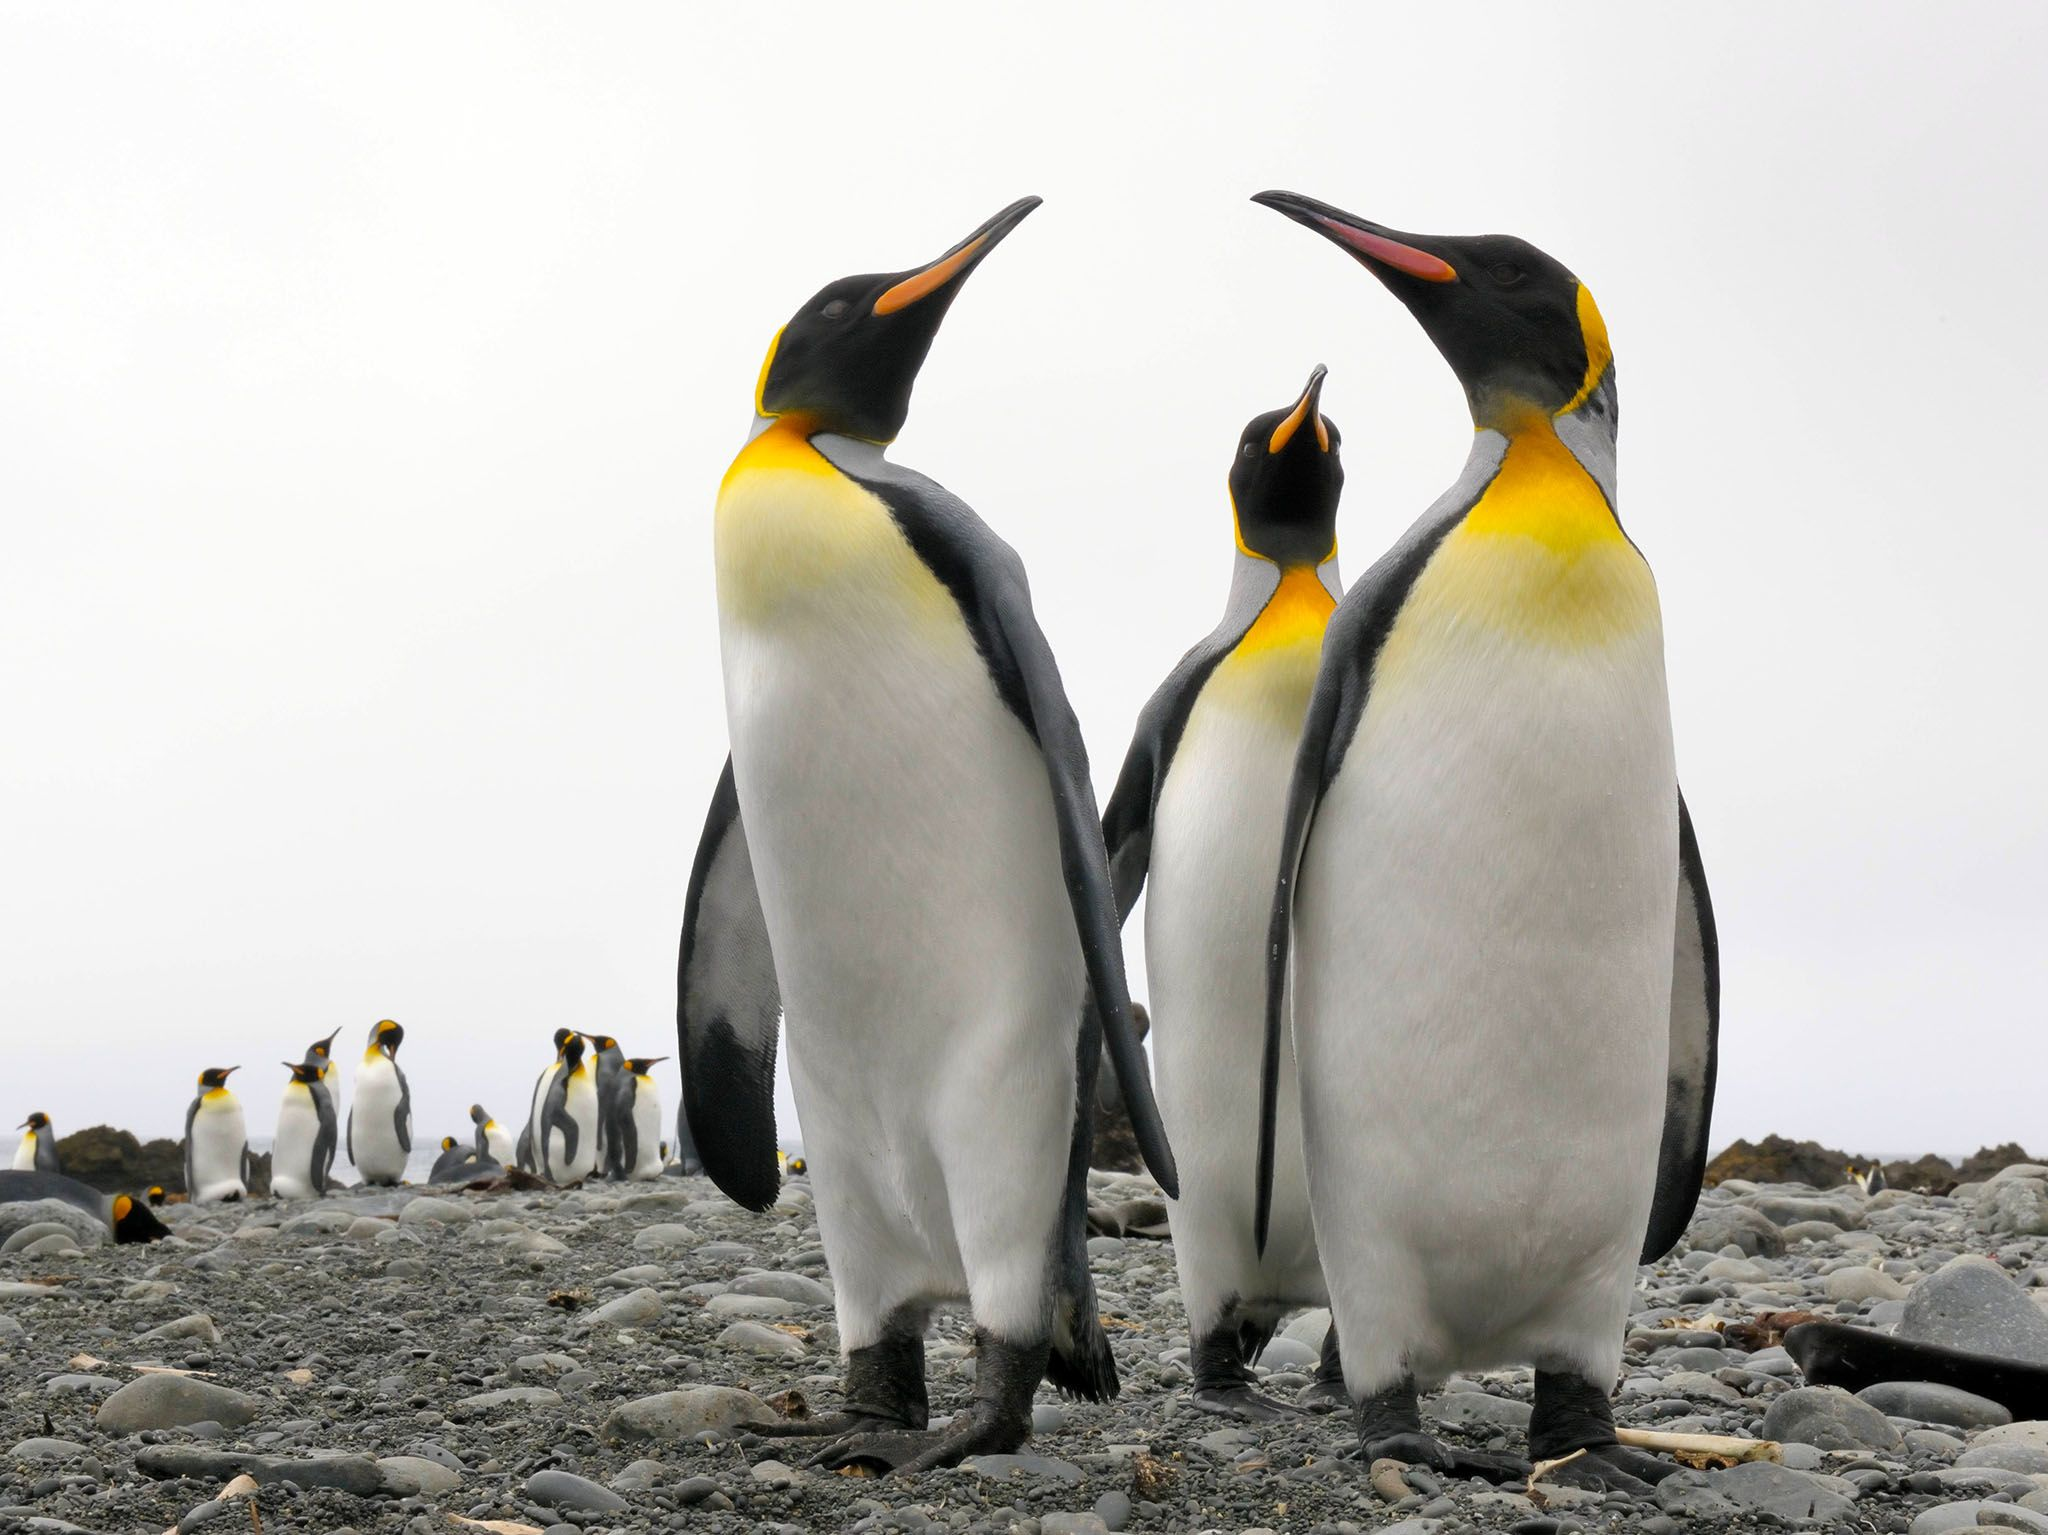 Sandy Beach, South Africa: King penguins walking on beach. Penguins are typically prey for... [Photo of the day - July 2017]